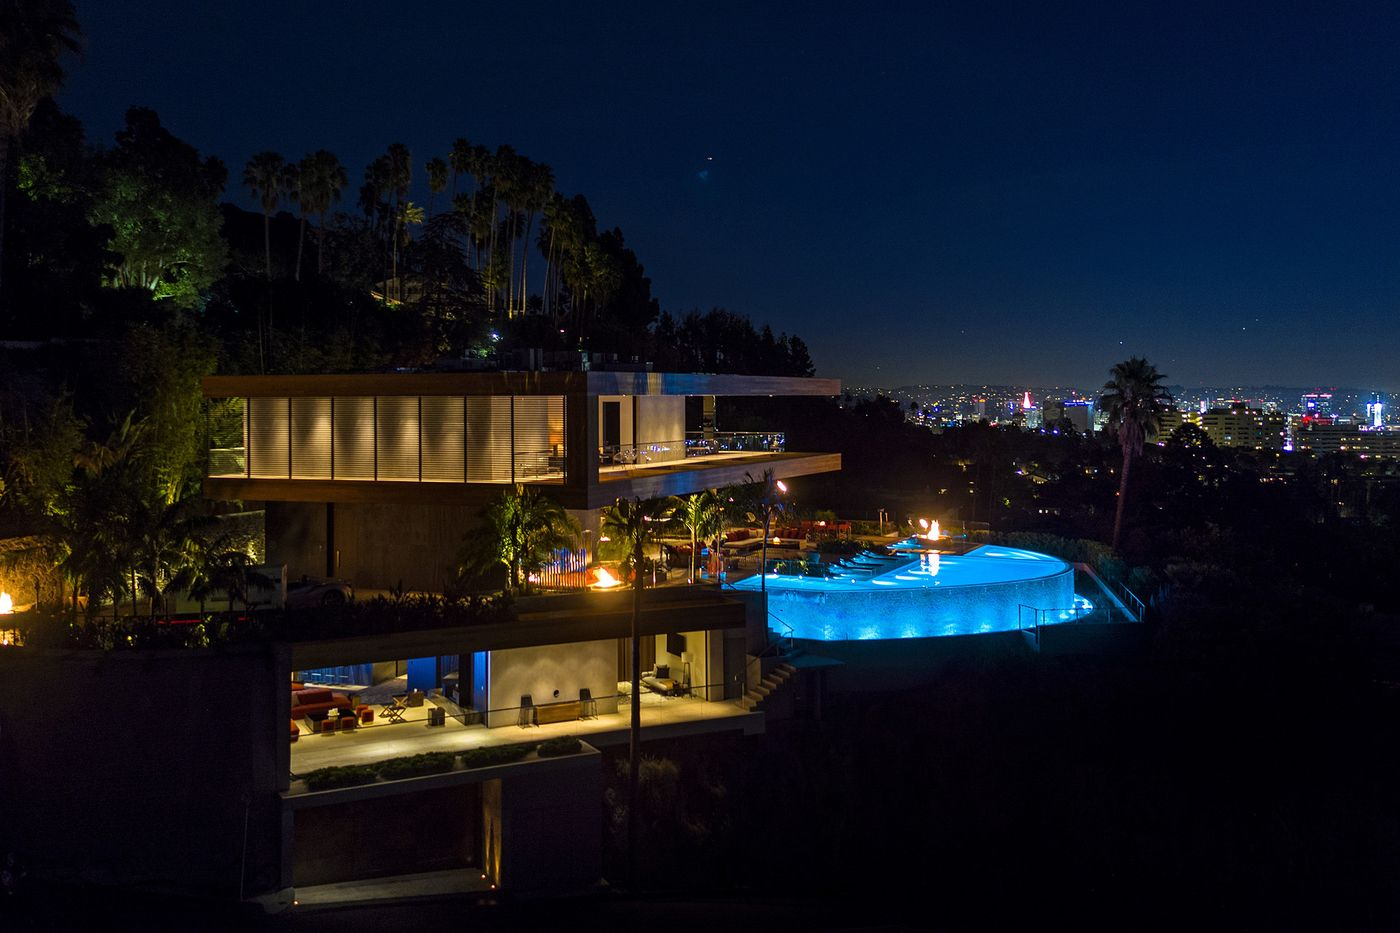 Los Angeles Times - Hollywood Hills spec mansion with interiors by Lenny Kravitz seeks $38 million